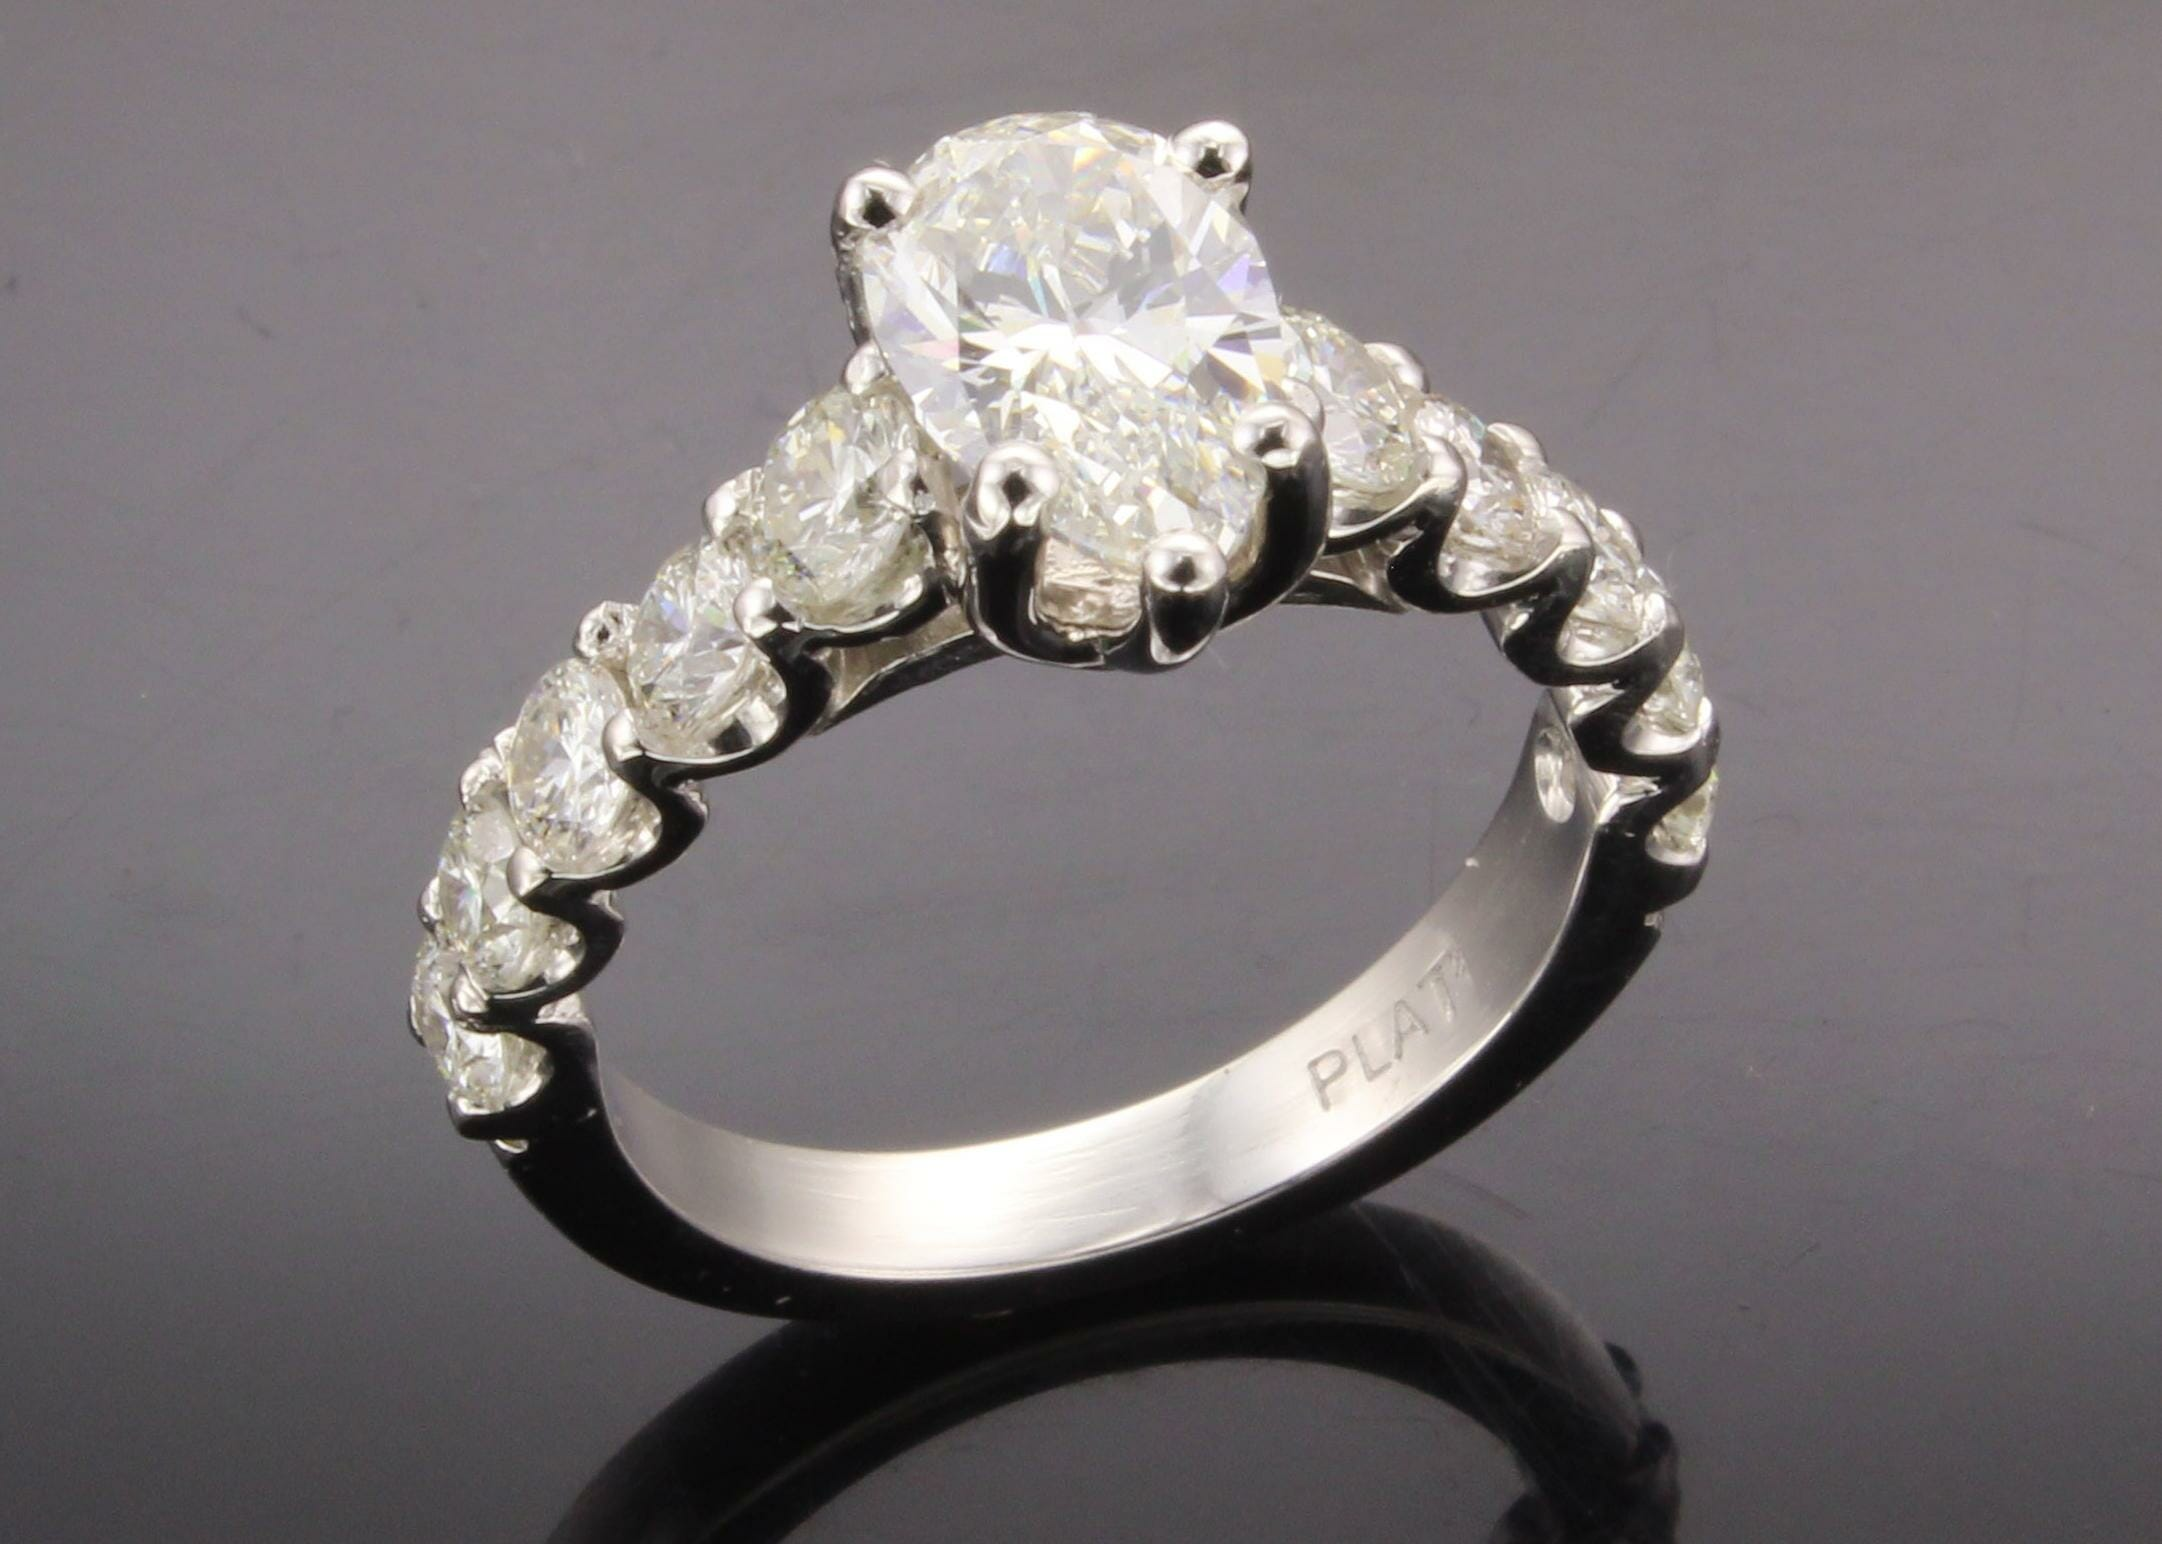 design pictures online excellent of jewellery own wedding your beautiful free ring